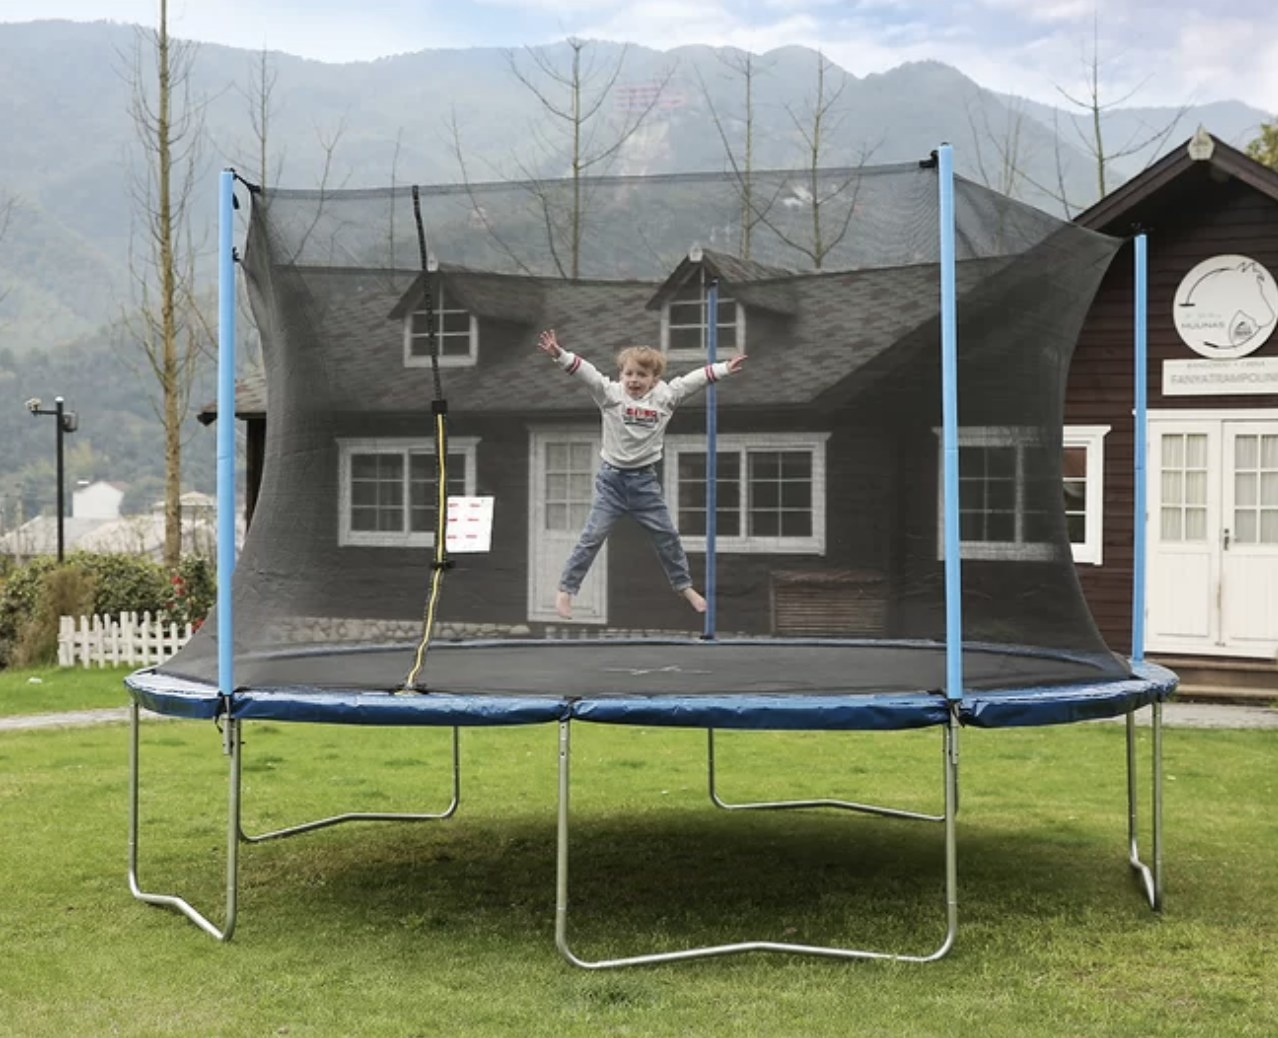 A person is jumping on a trampoline